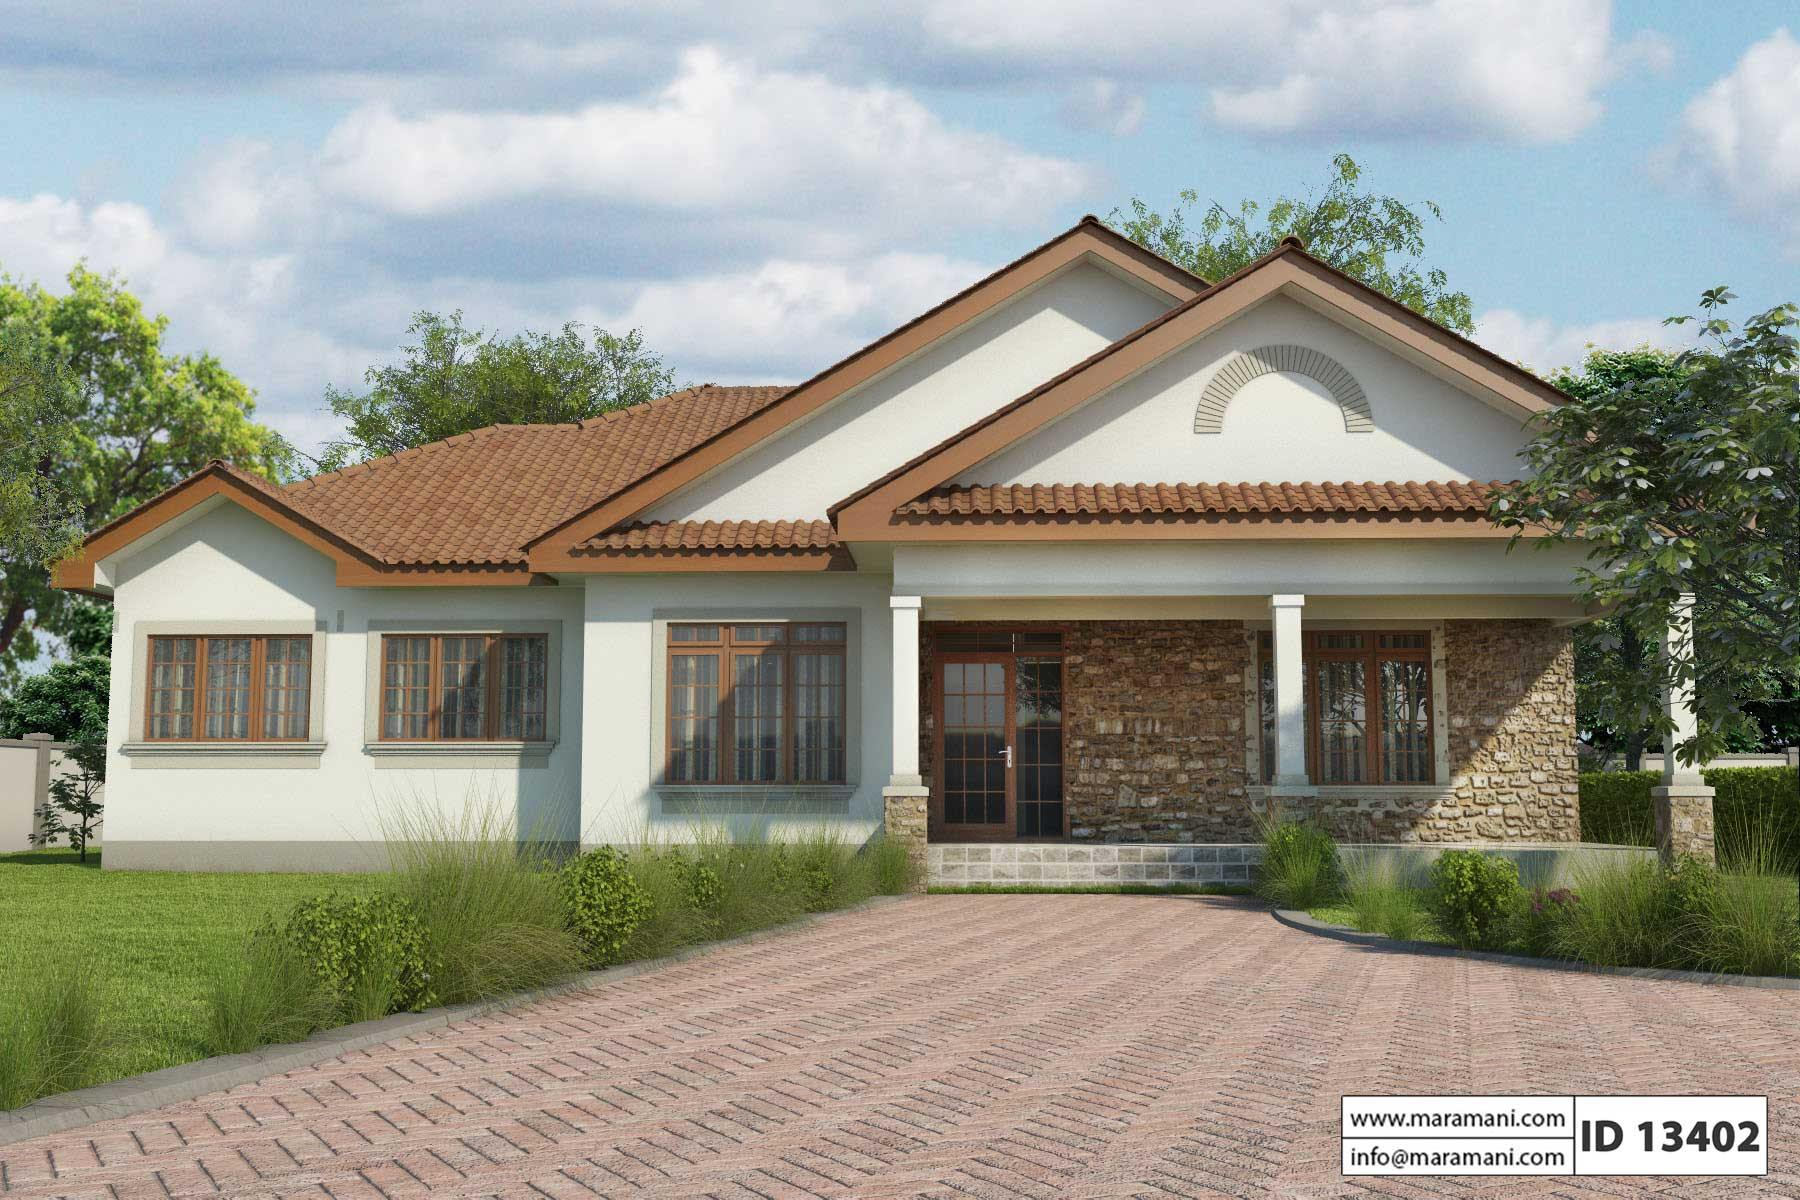 Simple 3 Bedroom House Plan - ID 13402 - House Designs by ...